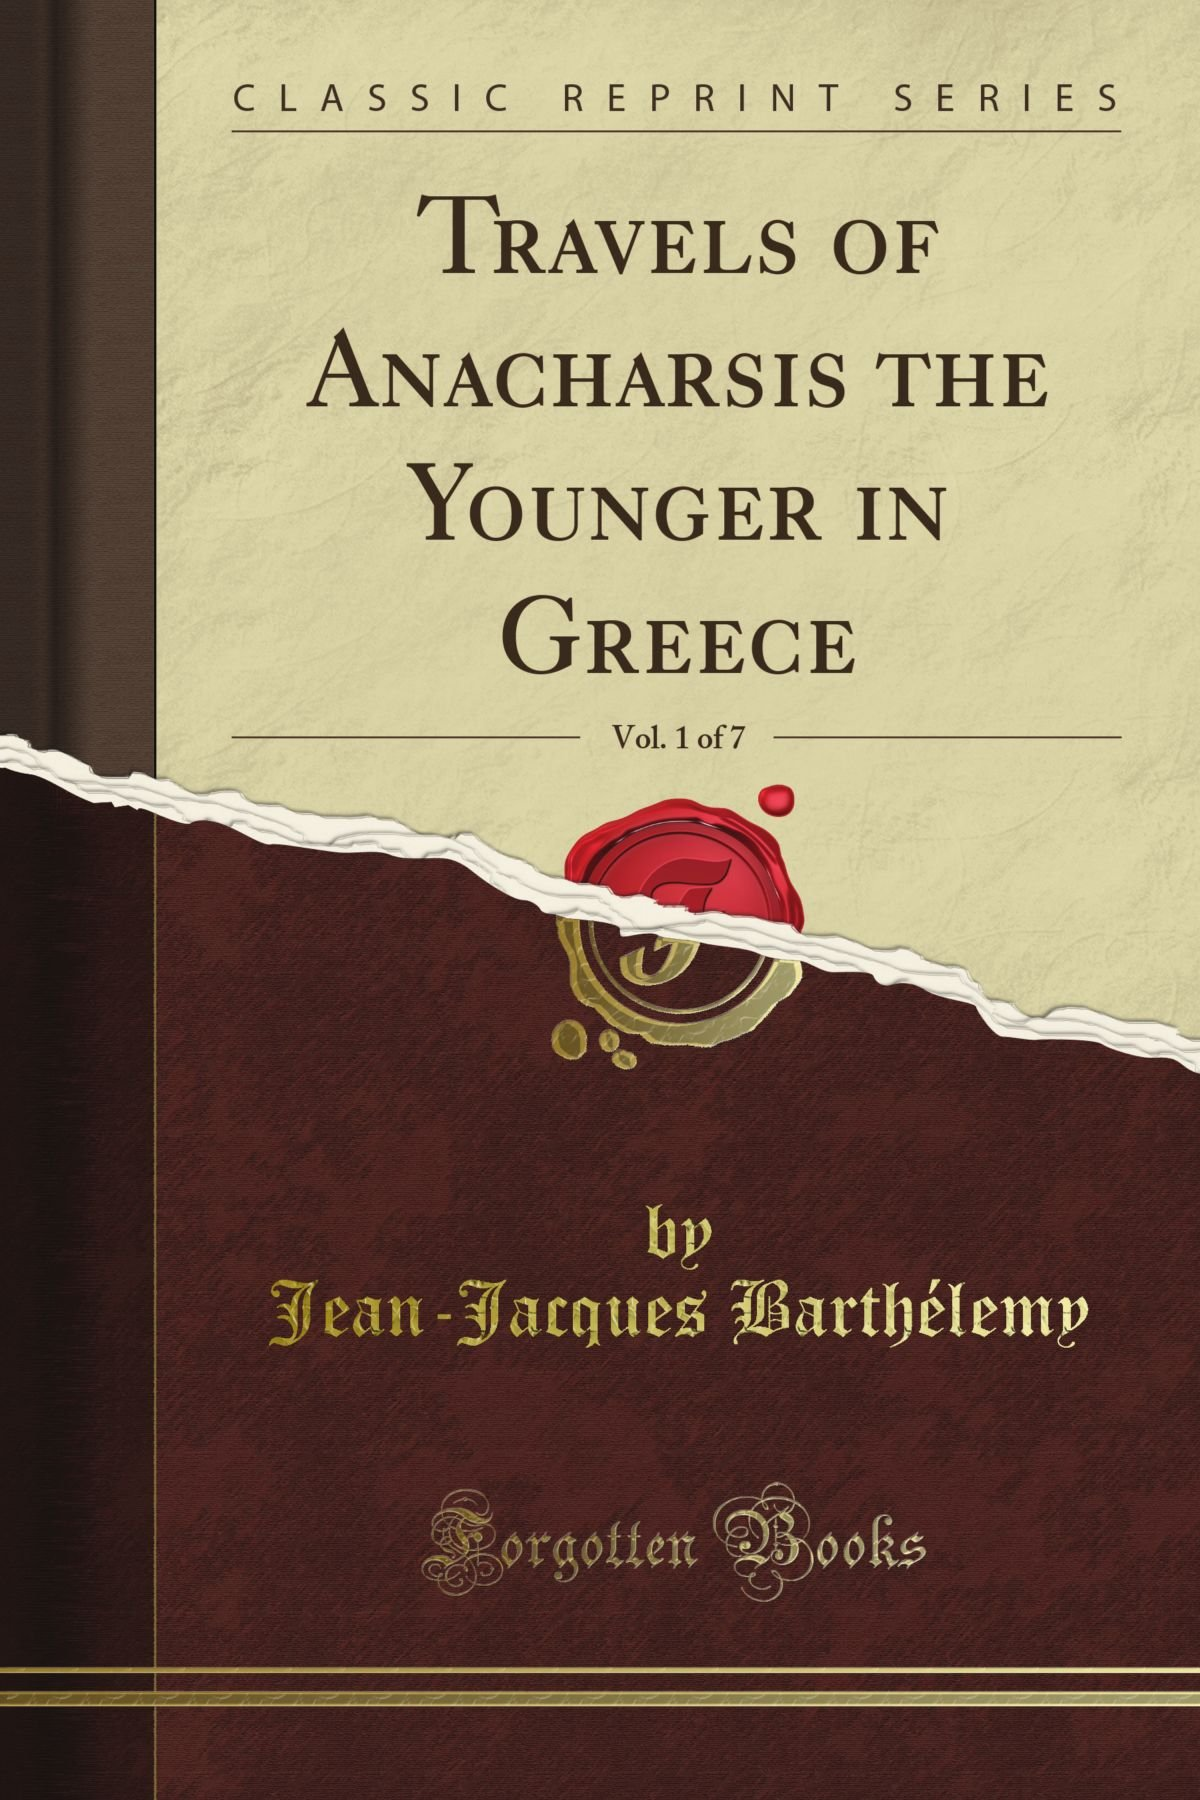 Download Travels of Anacharsis the Younger in Greece, Vol. 1 of 7 (Classic Reprint) ebook